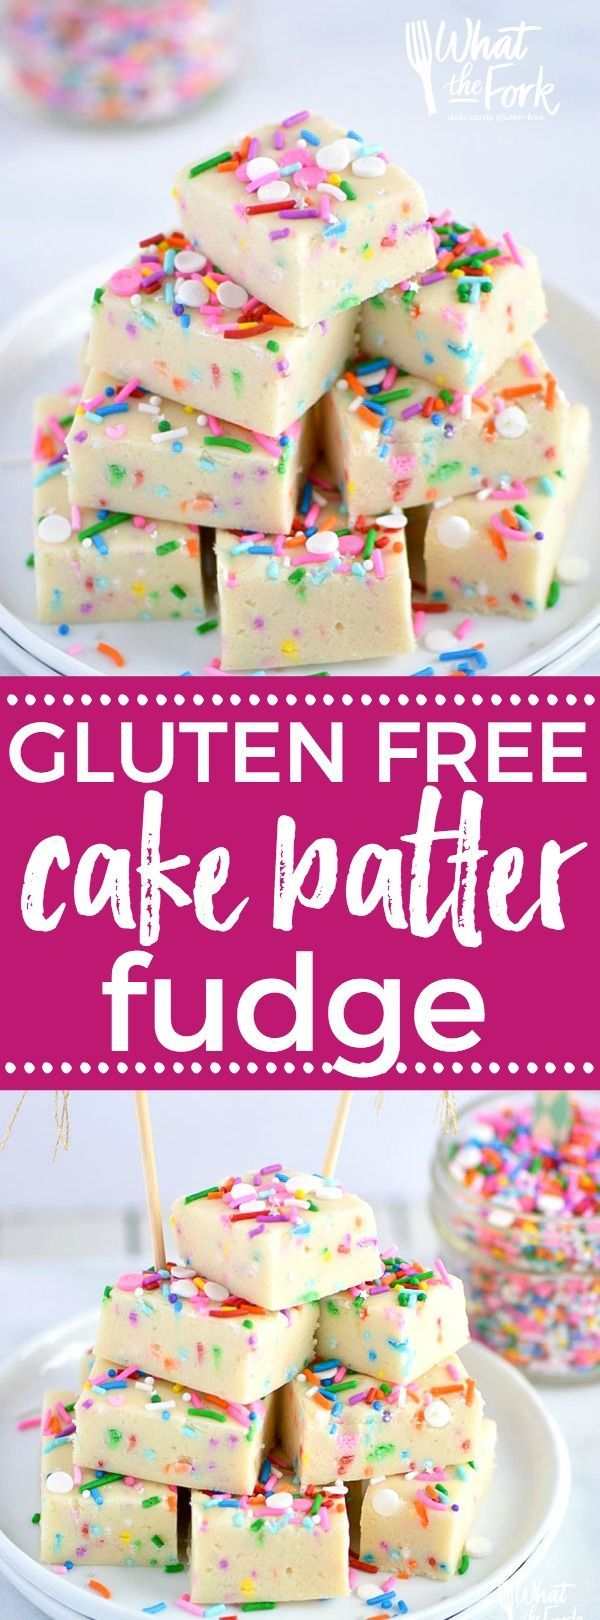 Gluten Free Cake Batter Fudge recipe from @whattheforkblog | whattheforkfoodblog.com | Funfetti | gluten free desserts | no-bake dessert recipes | easy fudge recipes | cake mix hacks